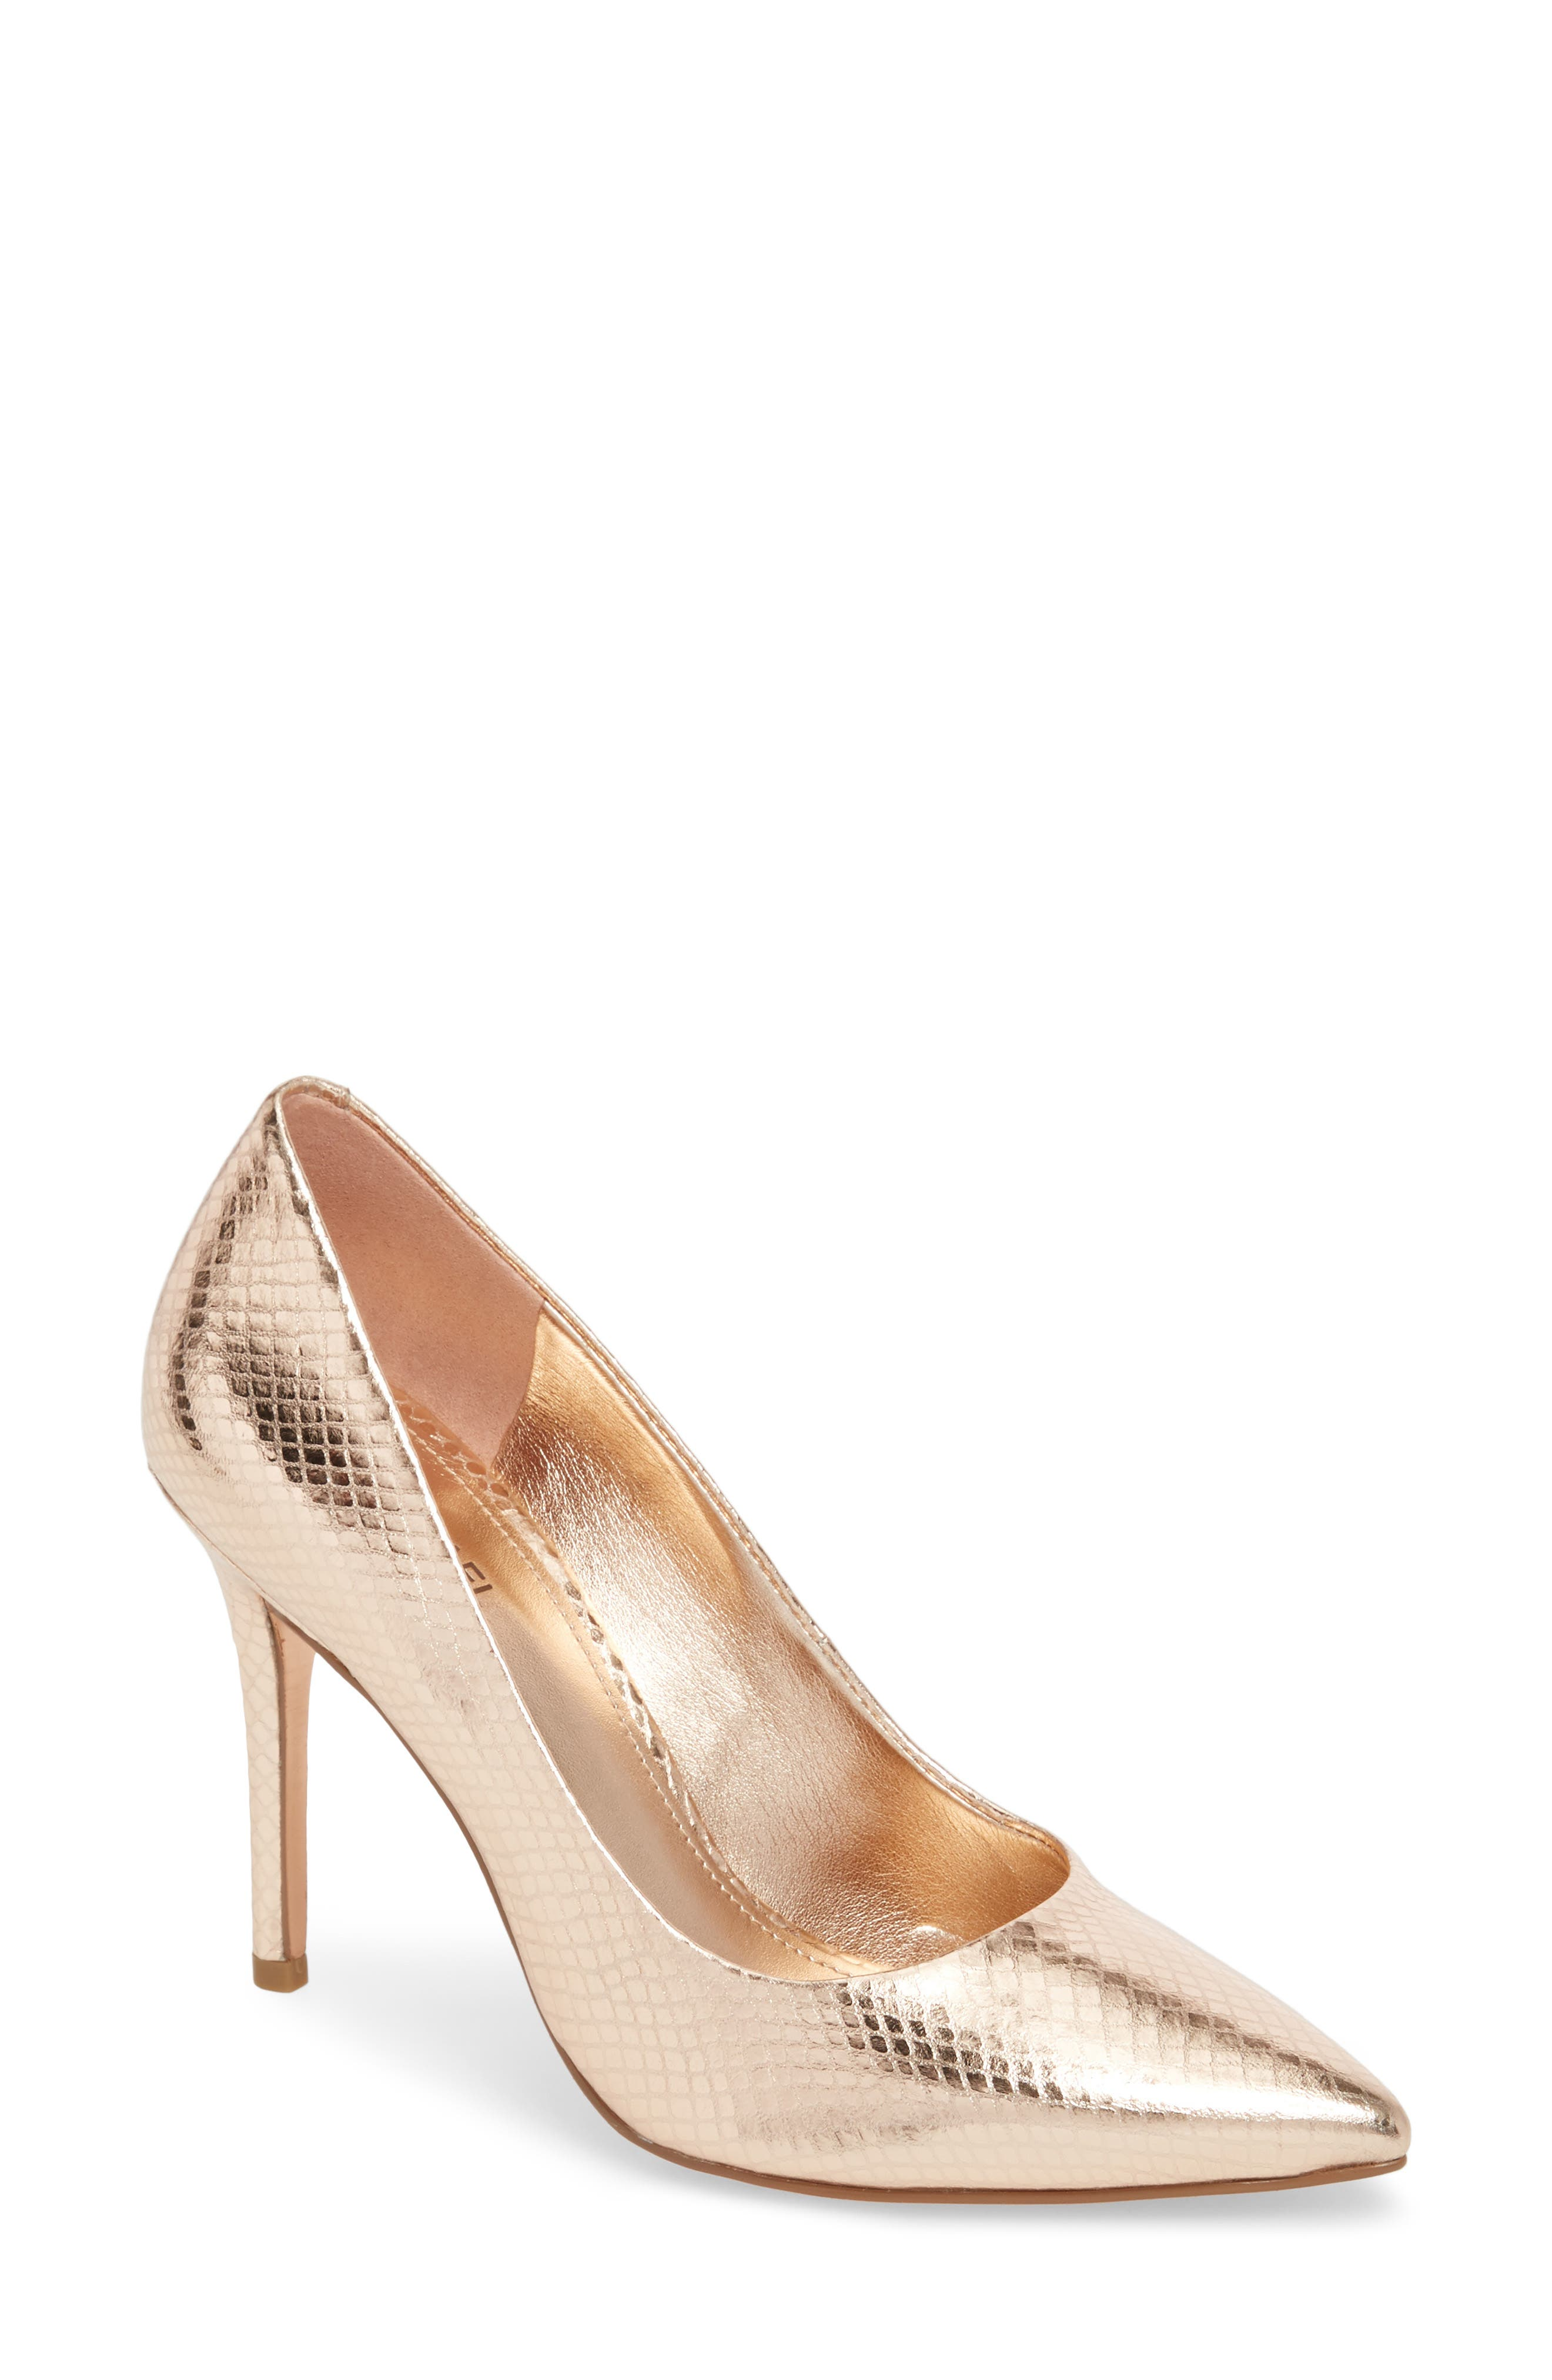 Claire Pointy Toe Pump,                             Main thumbnail 1, color,                             Soft Pink Snake Print Fabric